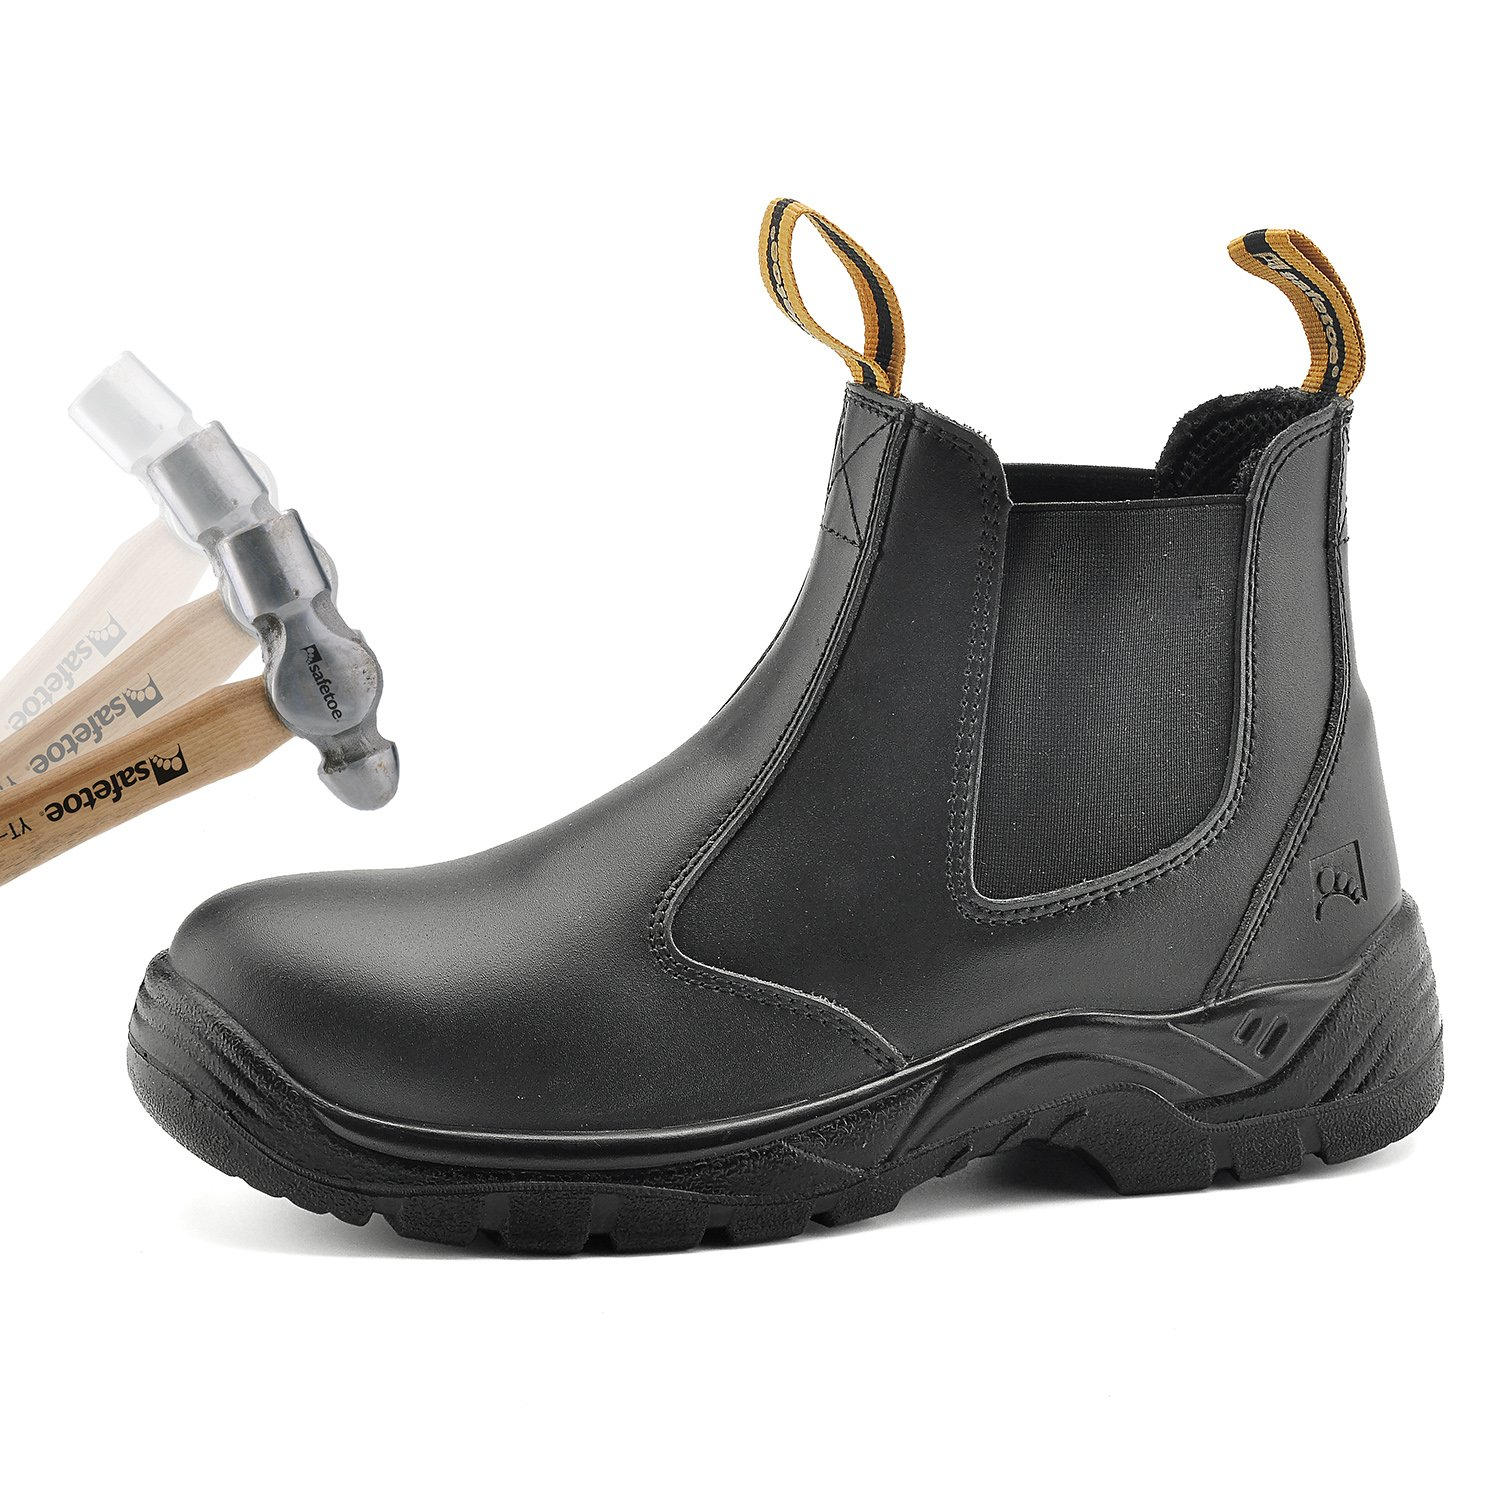 d5c836aed8b SAFETOE Water Resistant Safety Work Boots [CE Certified] - 8025 Free Sock  S3 Site Safety Shoes with Lightweight Wide Fit Steel Toe Cap, Black ...